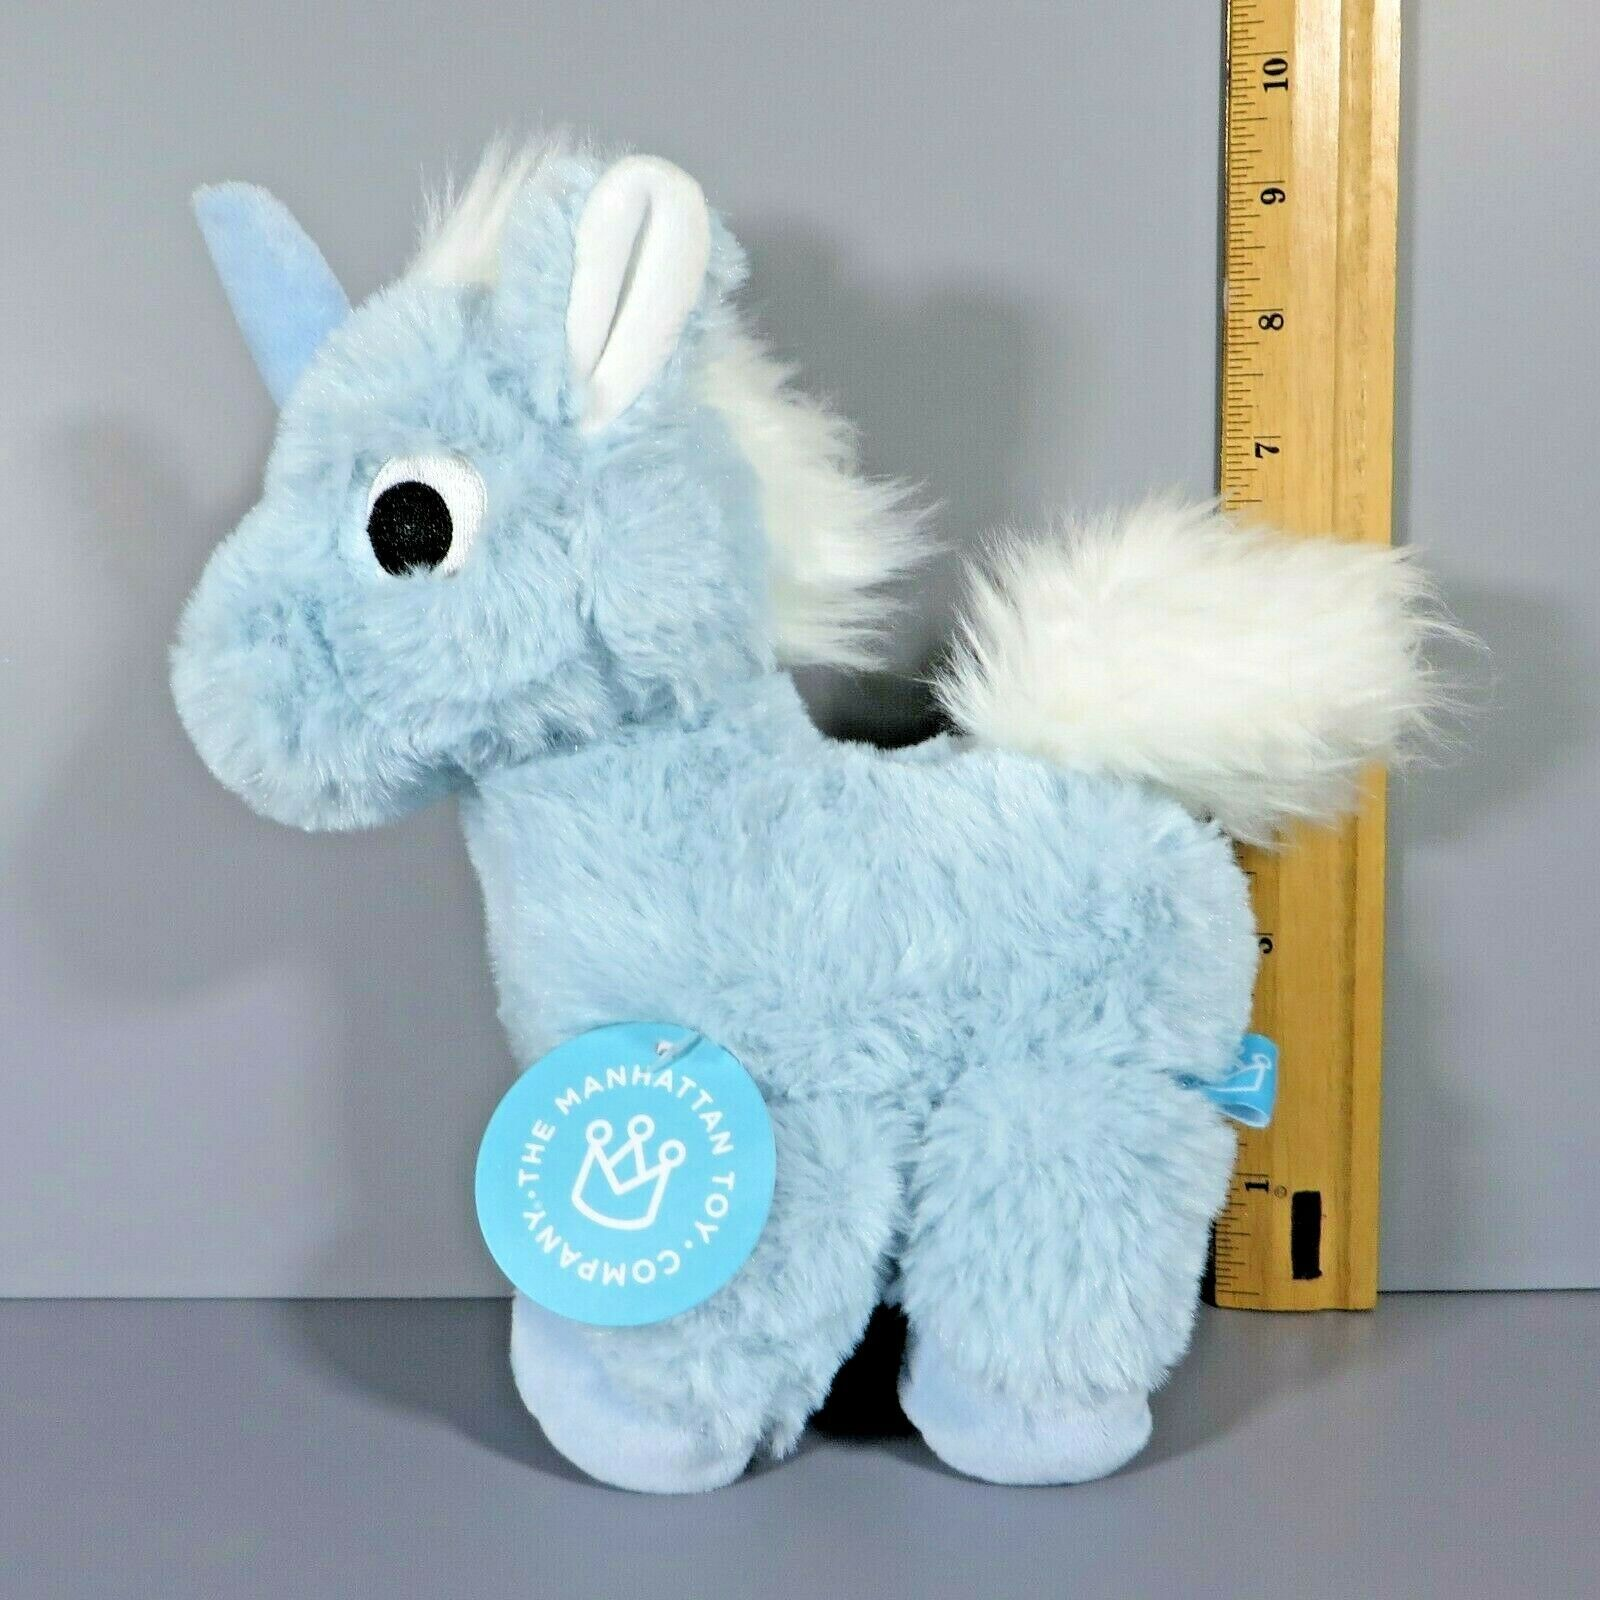 "Primary image for Manhattan Toy Company Floppies Light Blue Unicorn 9"" Plush Stuffed Animal w/ Tag"